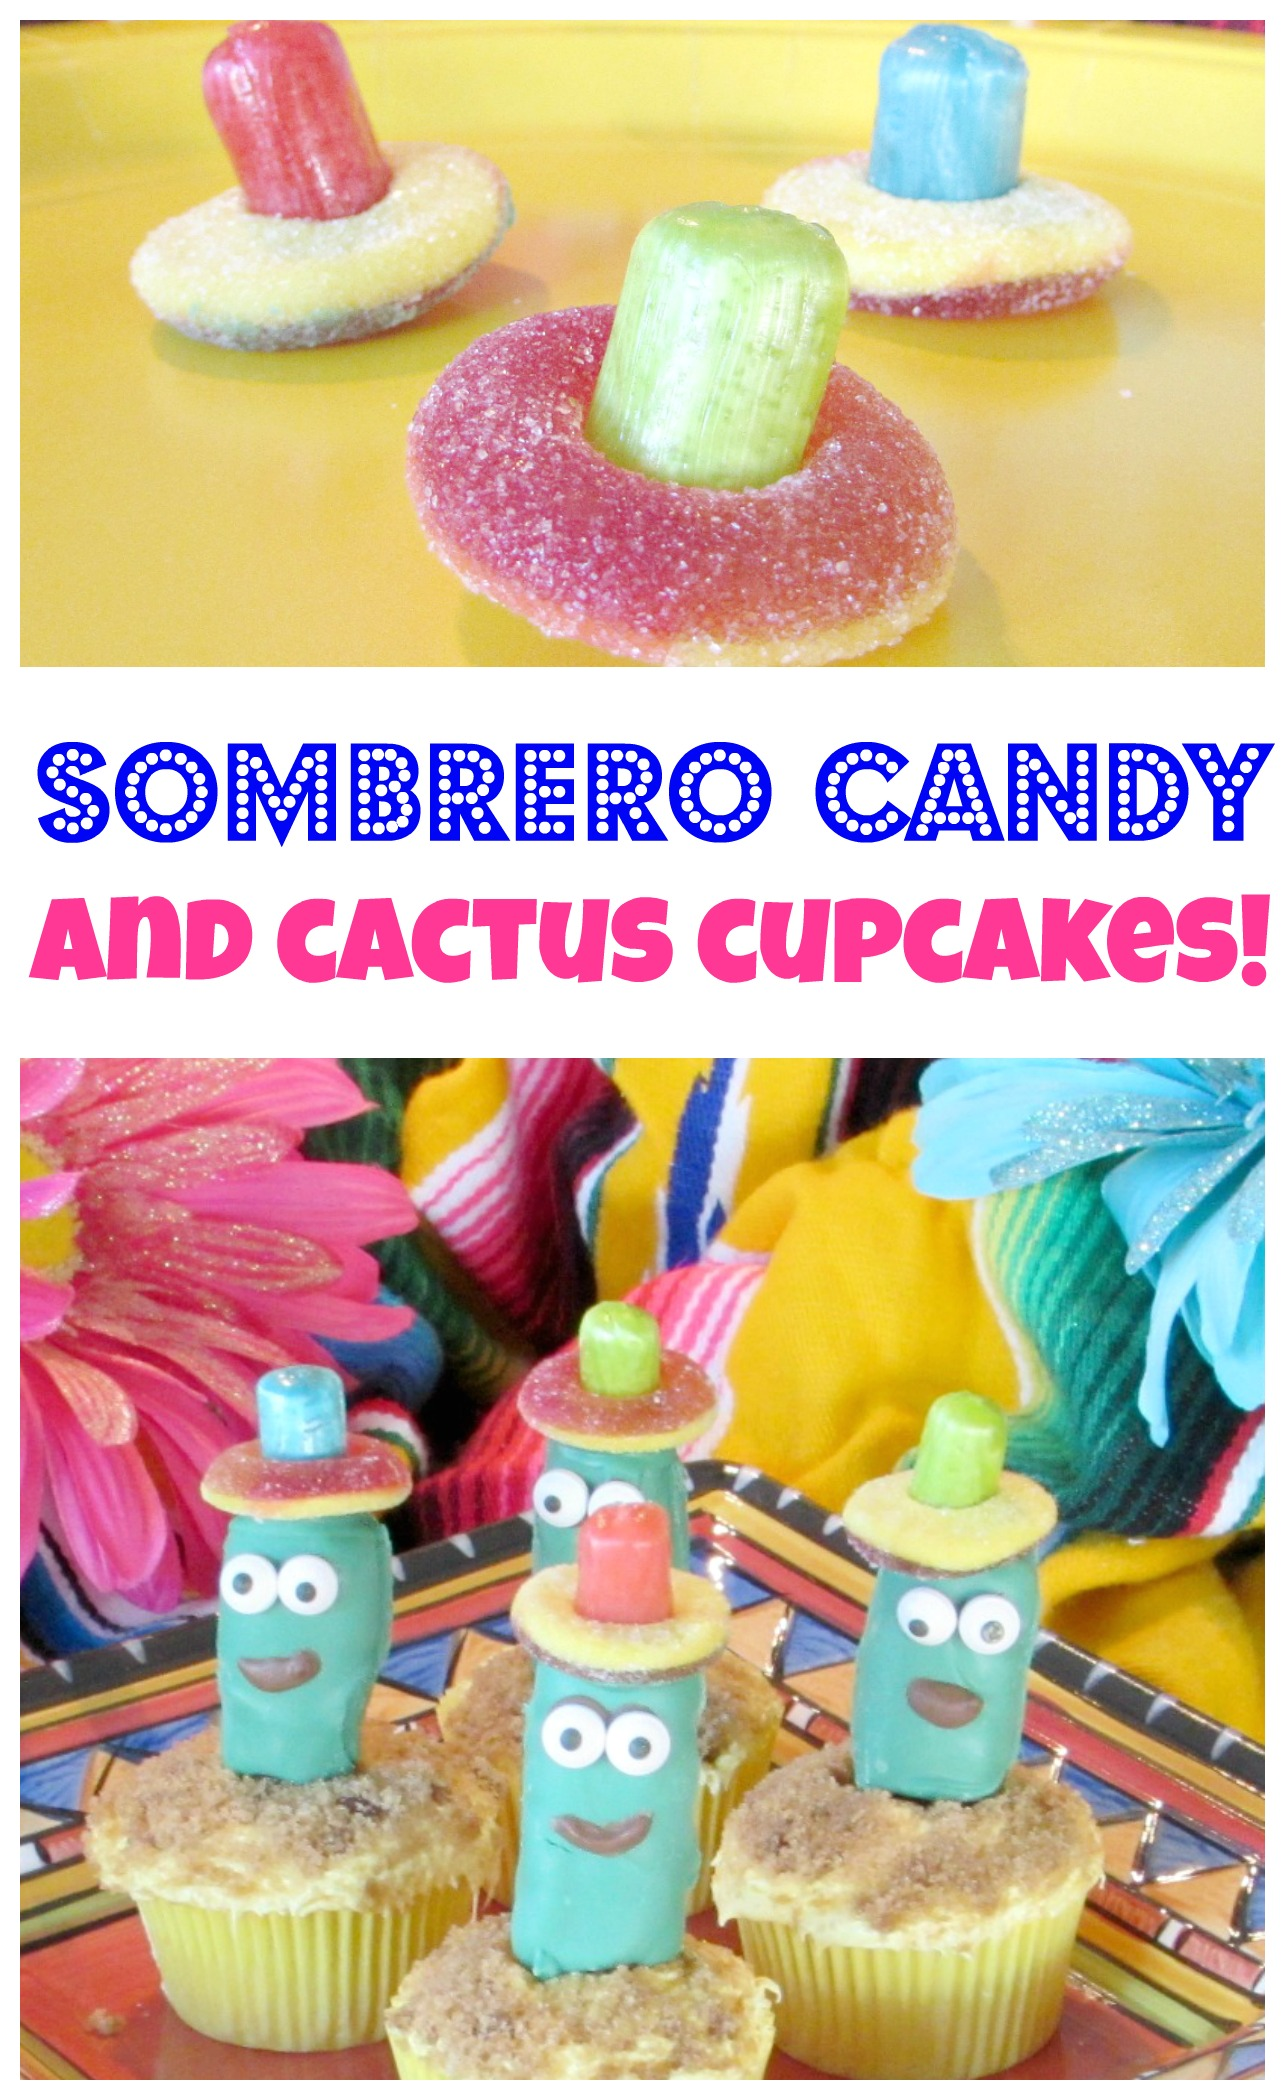 Sombrero Candy and Cactus Cupcakes